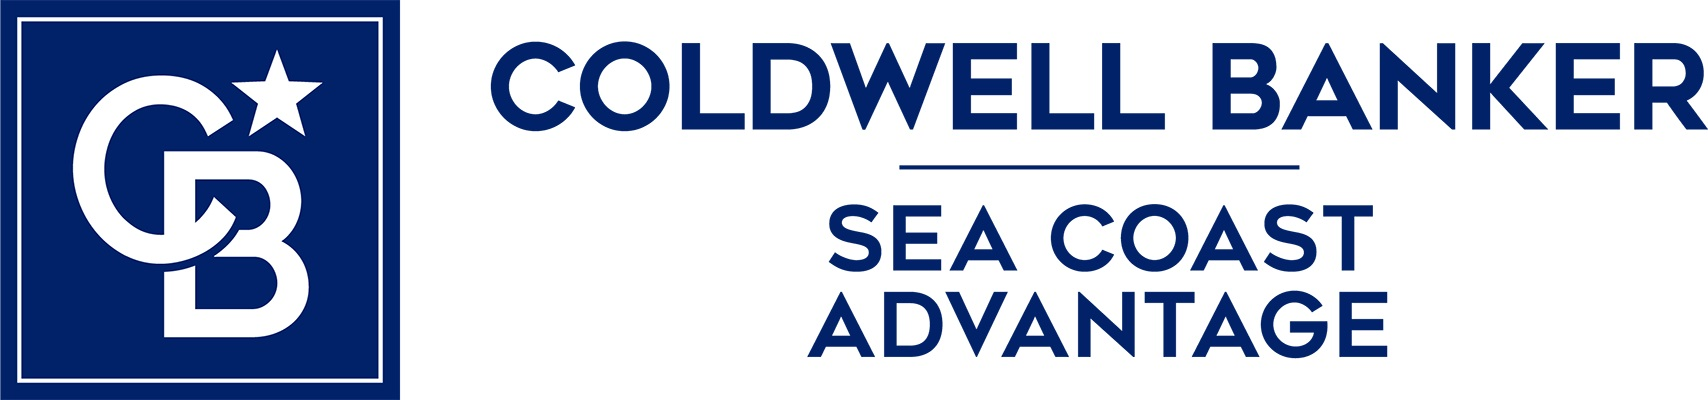 Jon Myers - Coldwell Banker Sea Coast Advantage Realty